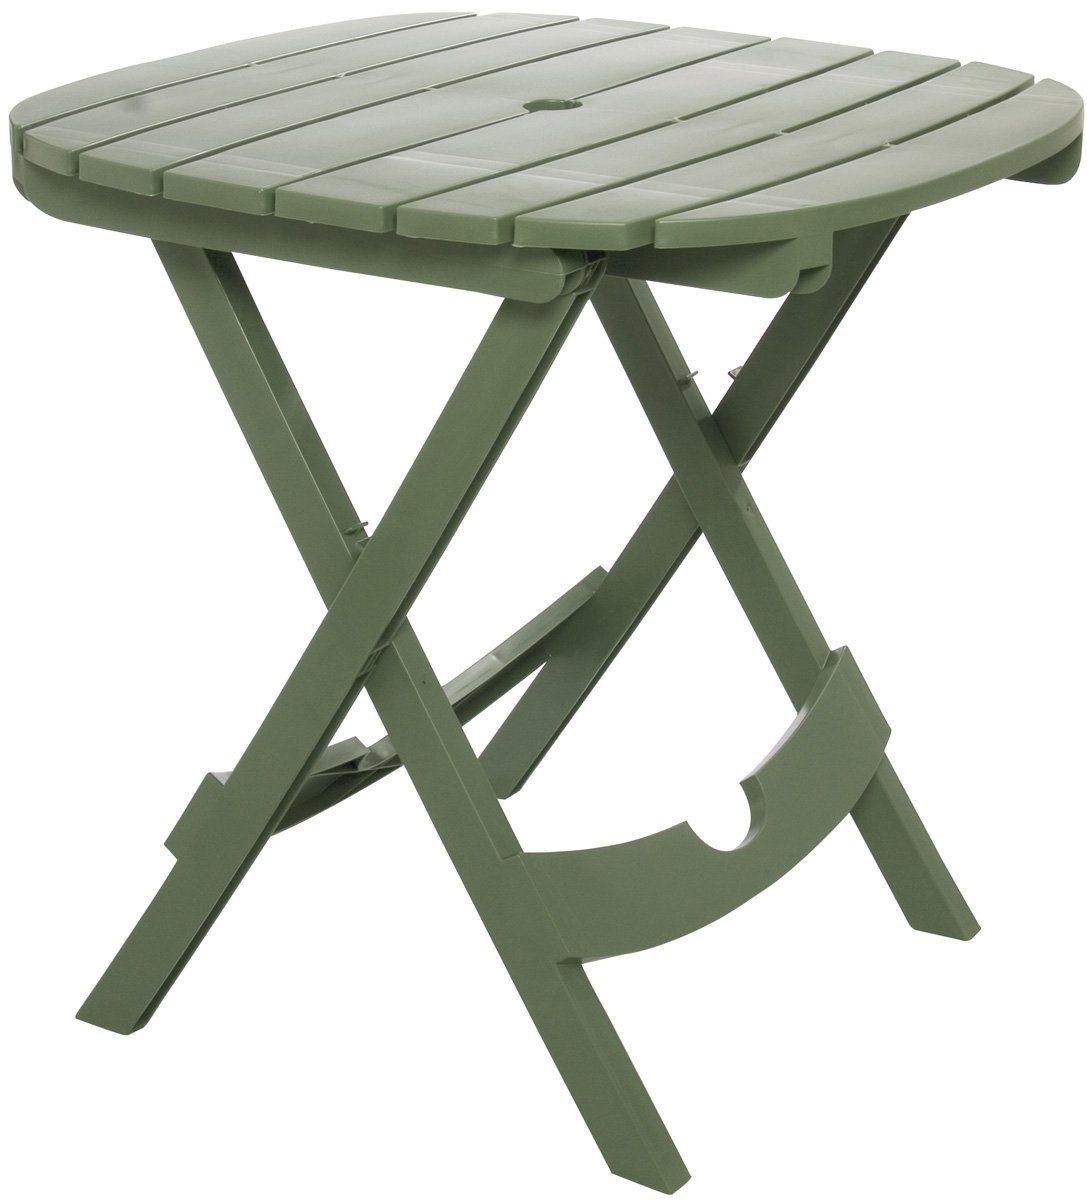 Adams Manufacturing 8550-01-3700 Quik-Fold Cafe Table, Sage